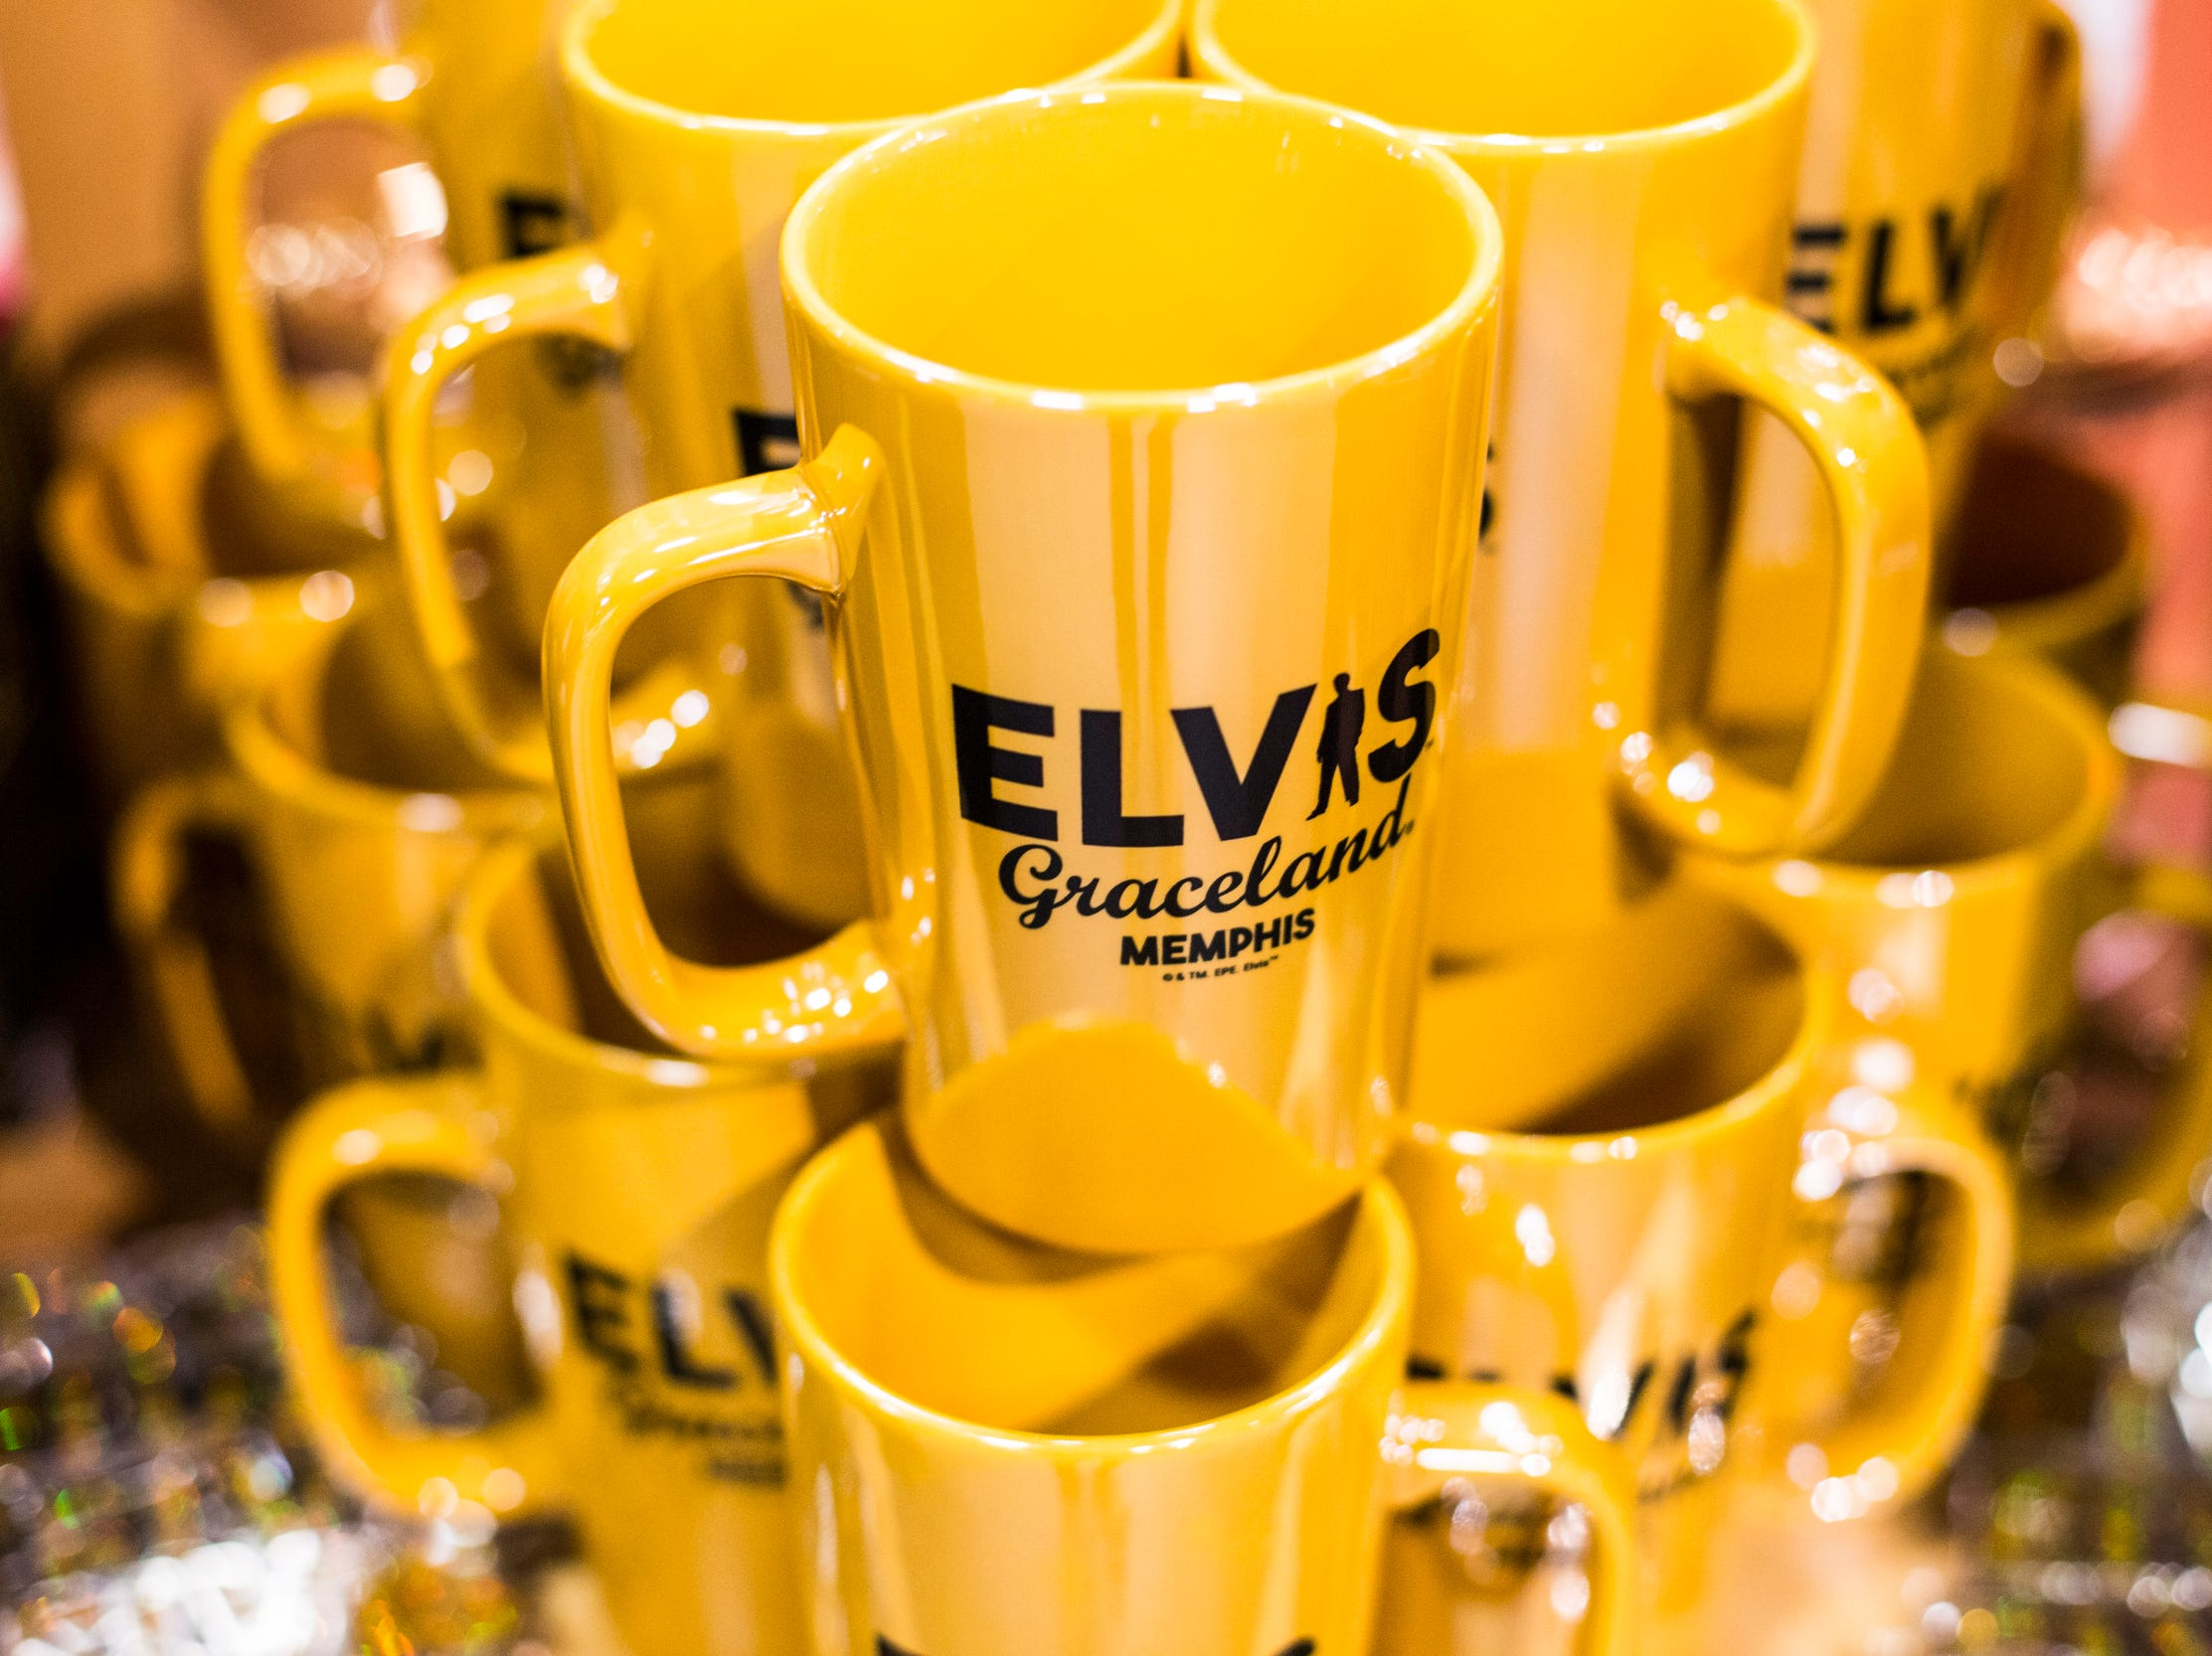 January 07 2019 - Scenes from Elvis' Birthday Bash at Elvis Presley's Memphis on Monday night. Elvis Presley's birthday is January 8th and will be celebrated at Graceland with a Elvis Birthday Proclamation Ceremony.